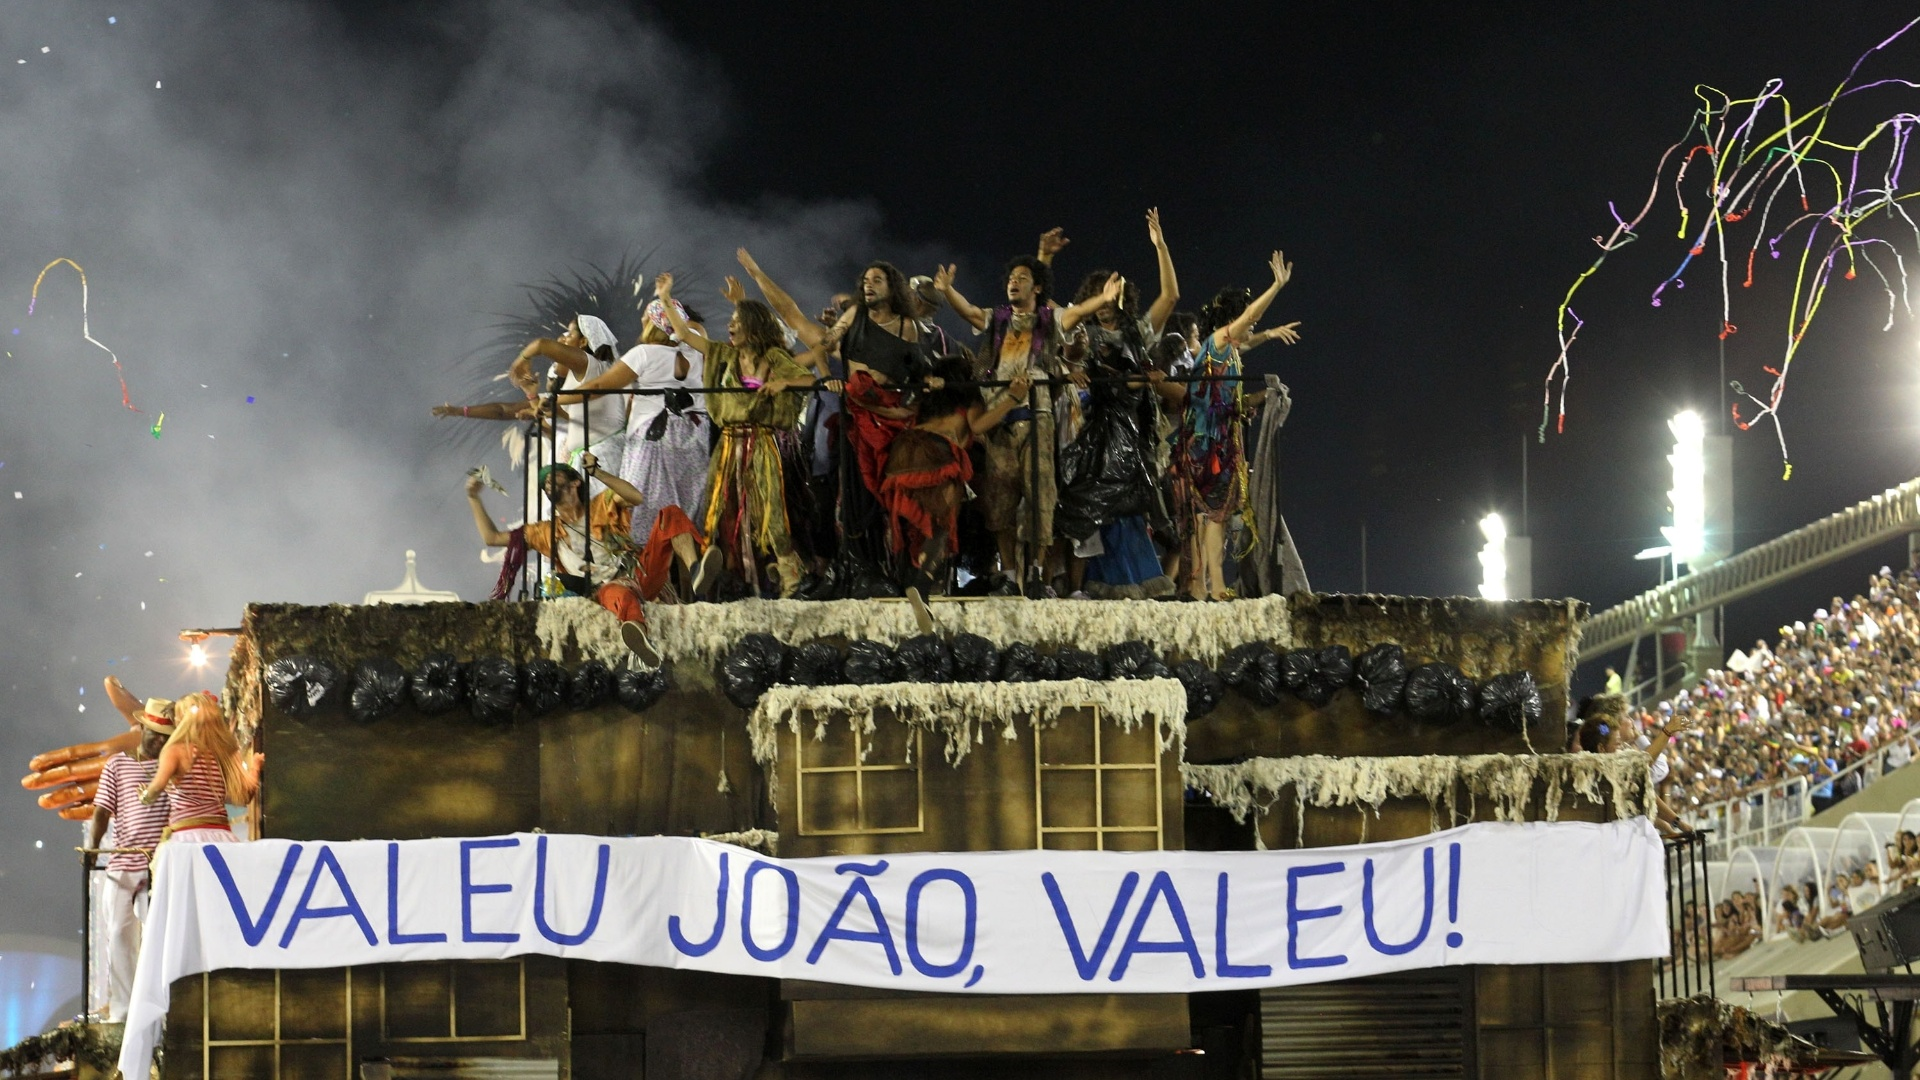 A Beija-Flor de Nilpolis homenageia o carnavalesco Josinho Trinta, que morreu em 2011 aos 78 anos (20/2/2012)